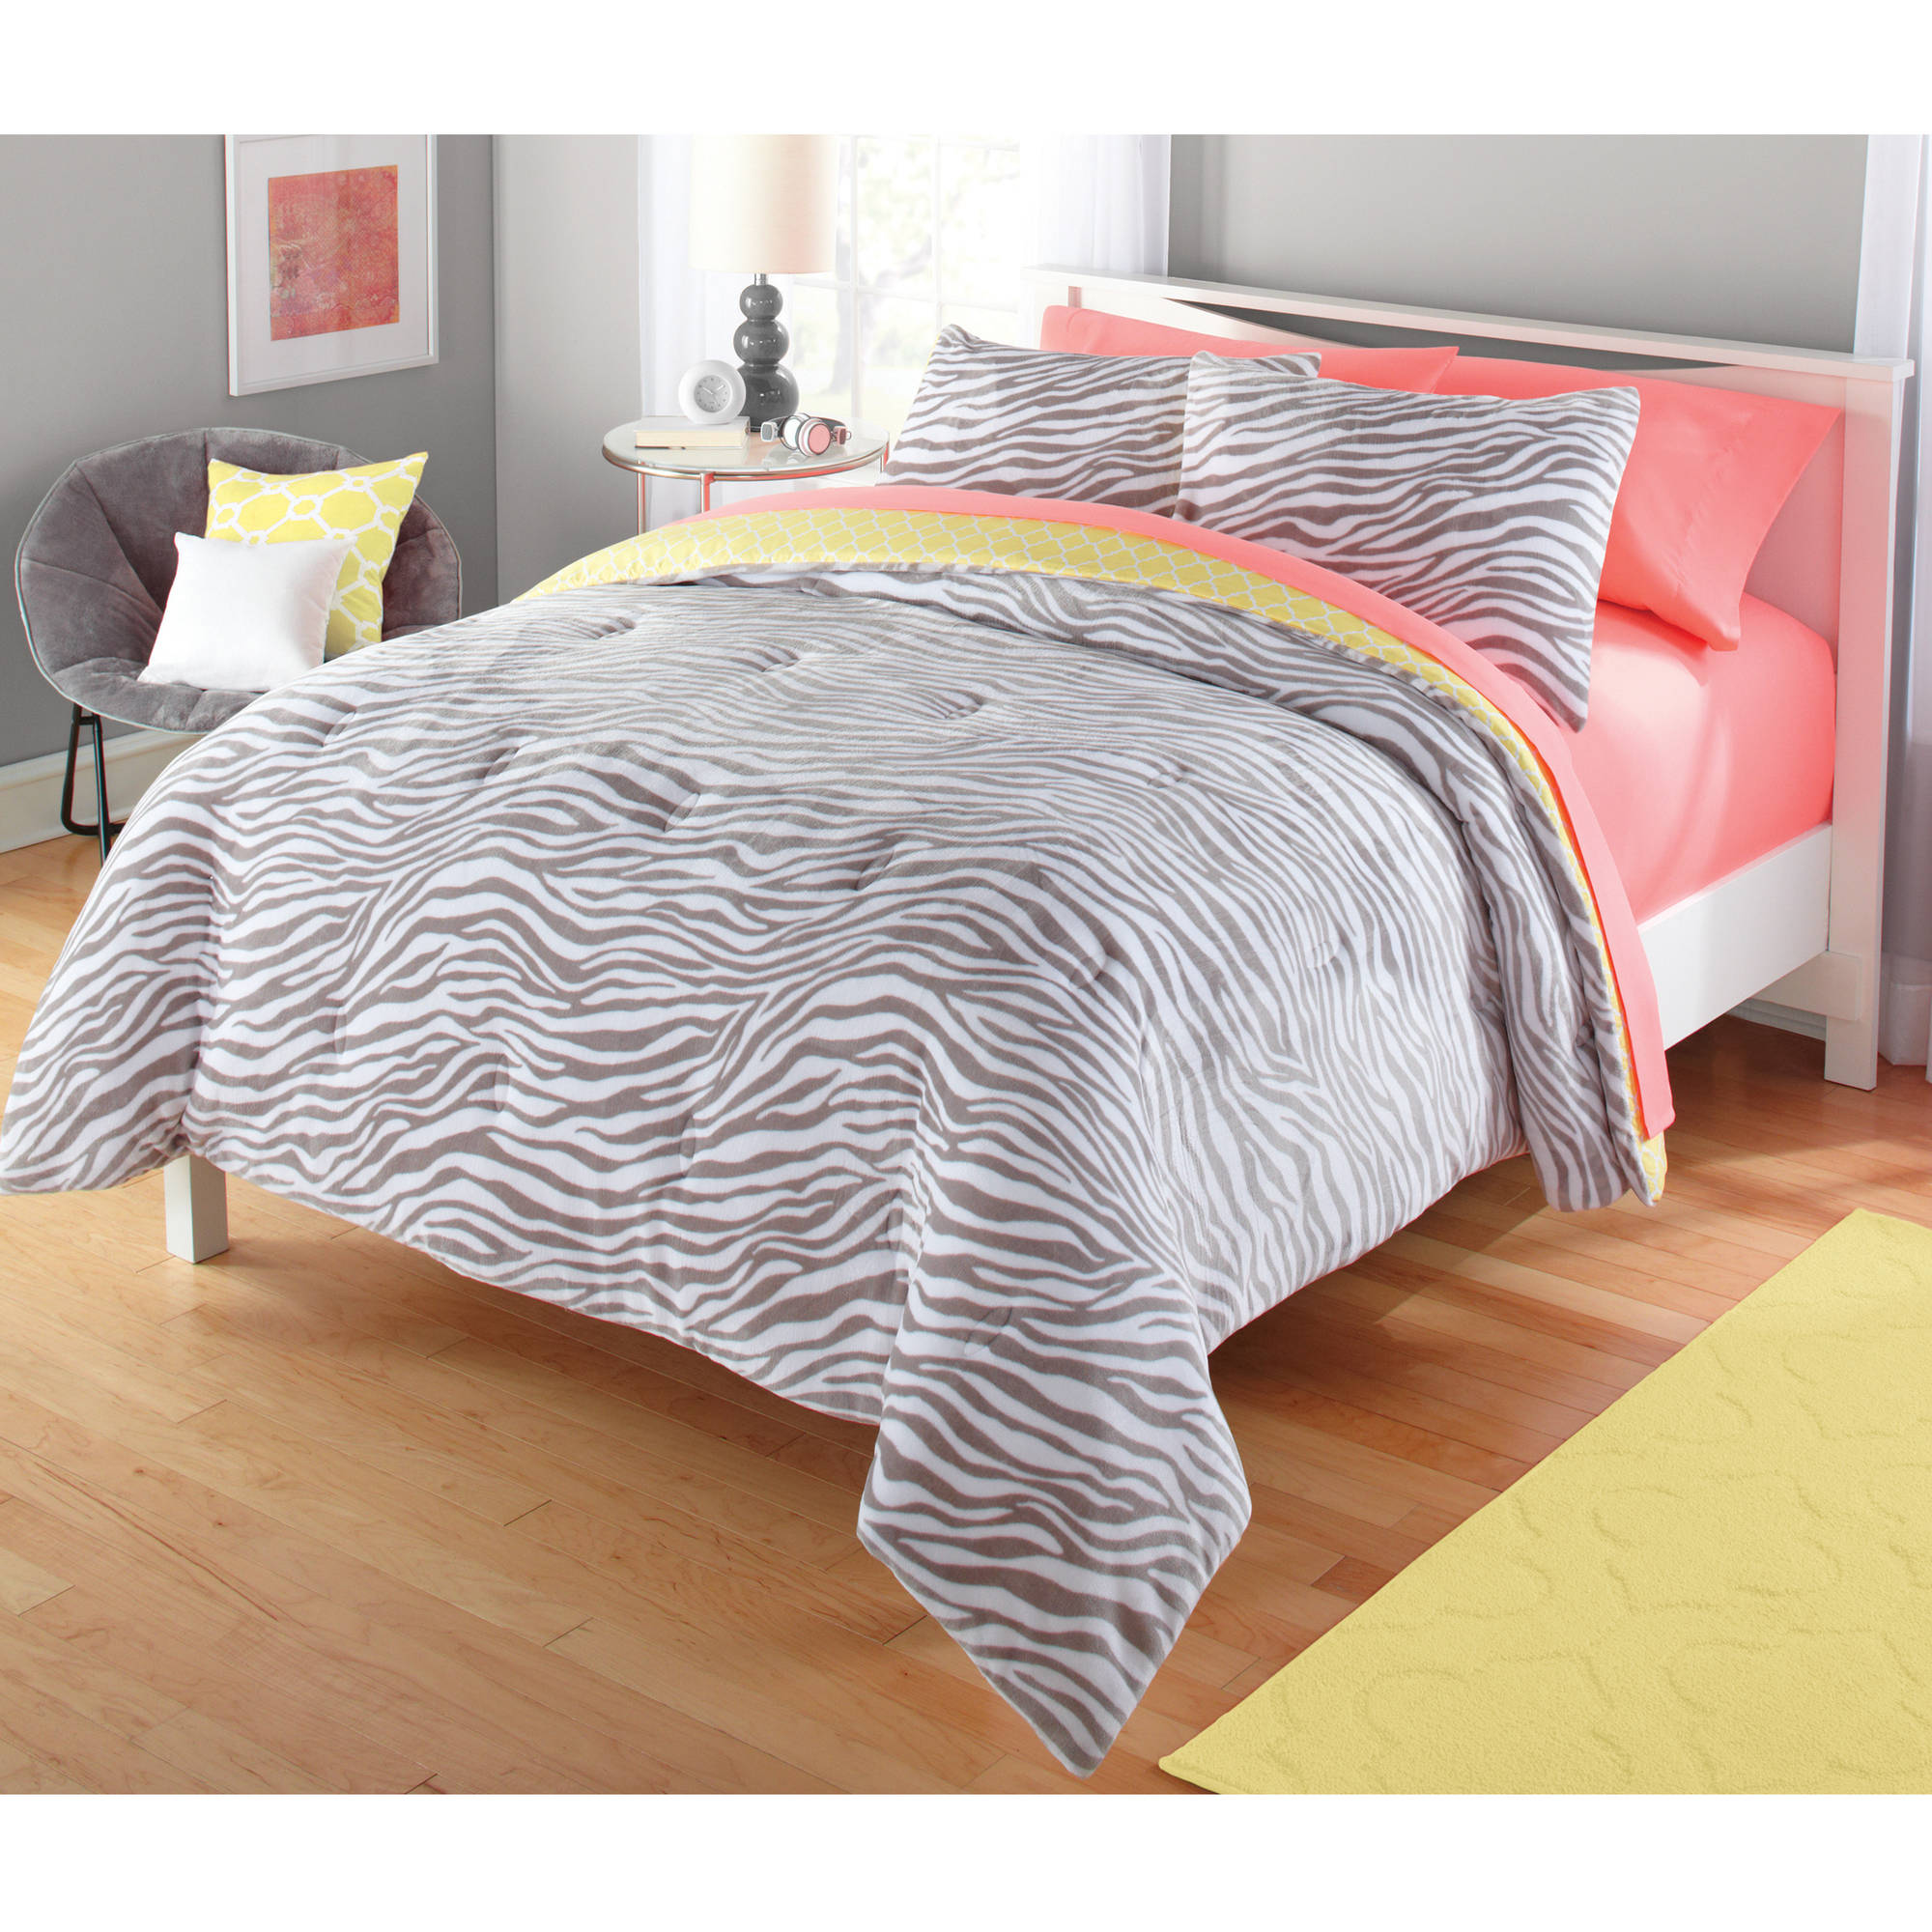 your zone gray and yellow zebra comforter set